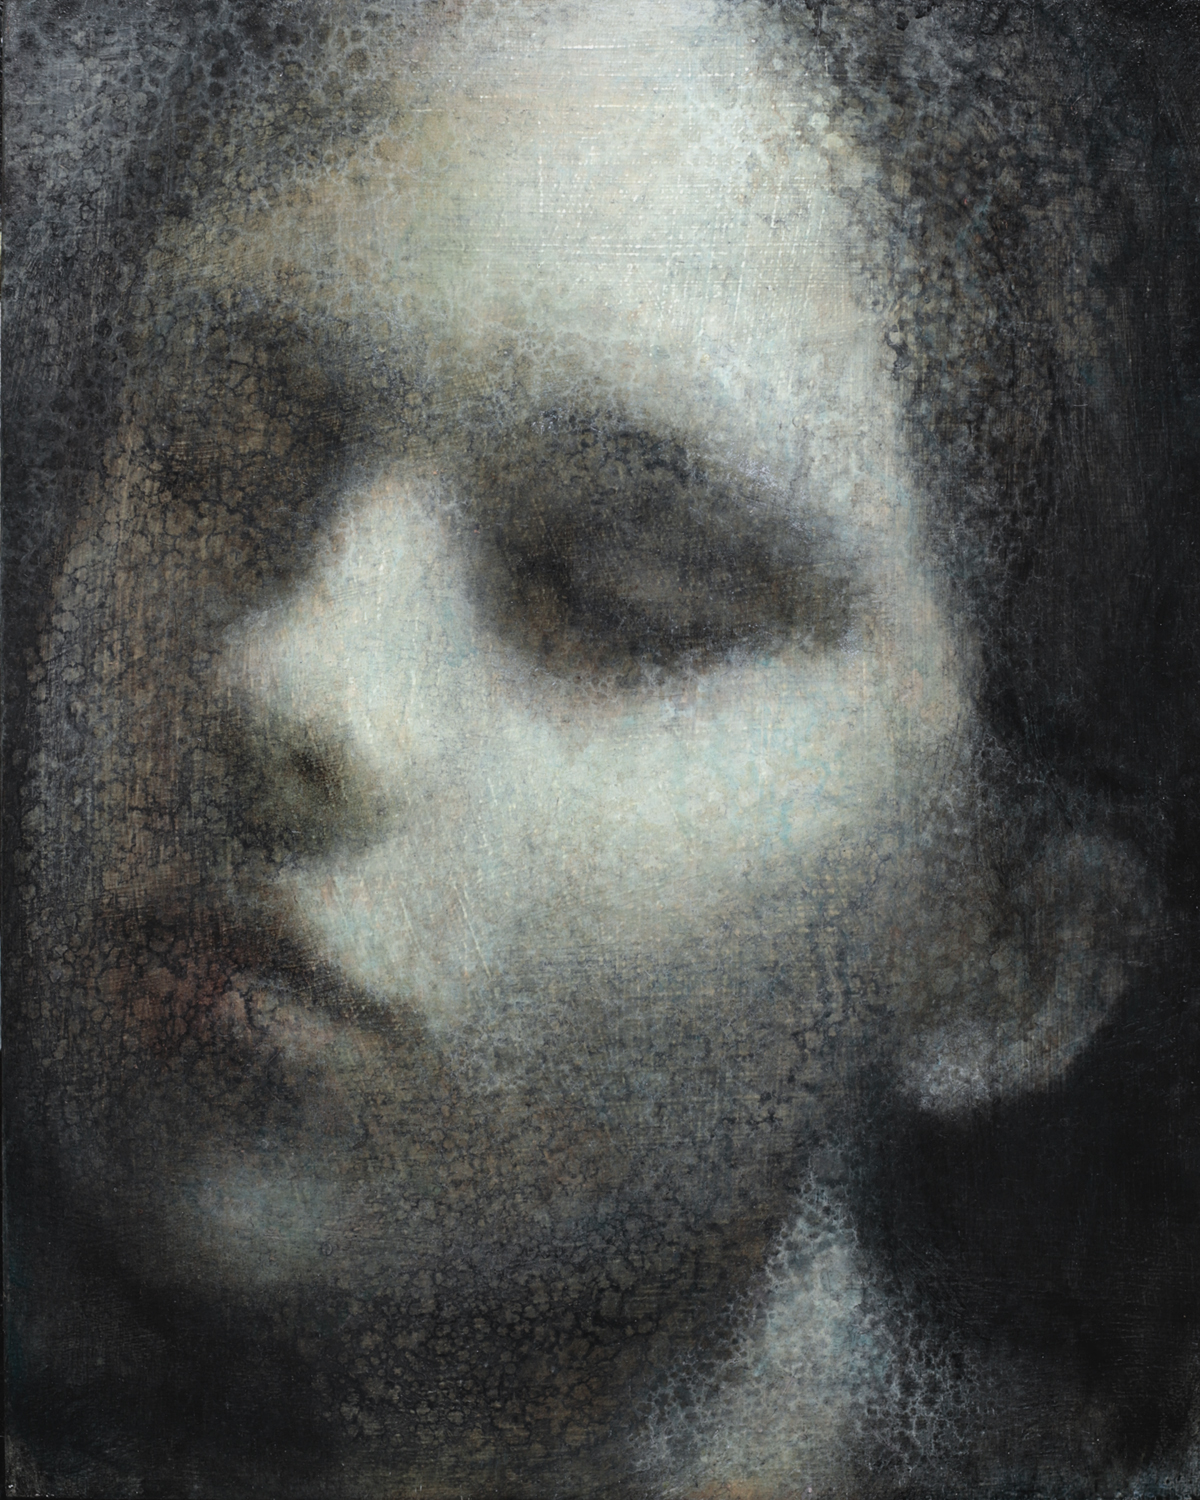 Maya Kulenovic; INTERLUDE No2, 2019. Oil on wood panel. 'Faces' series.